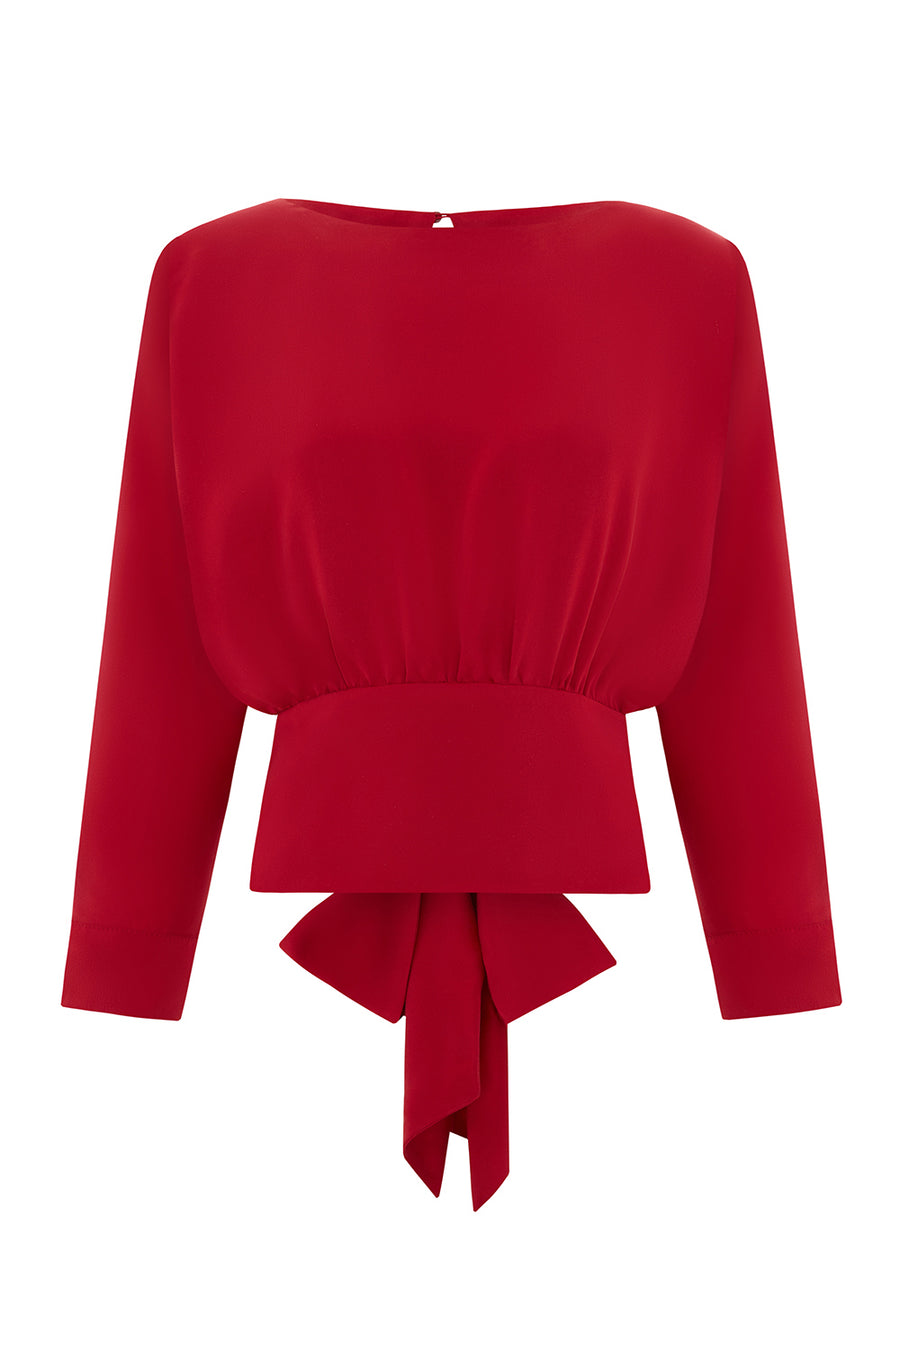 The Aerial Top | Vamp Red